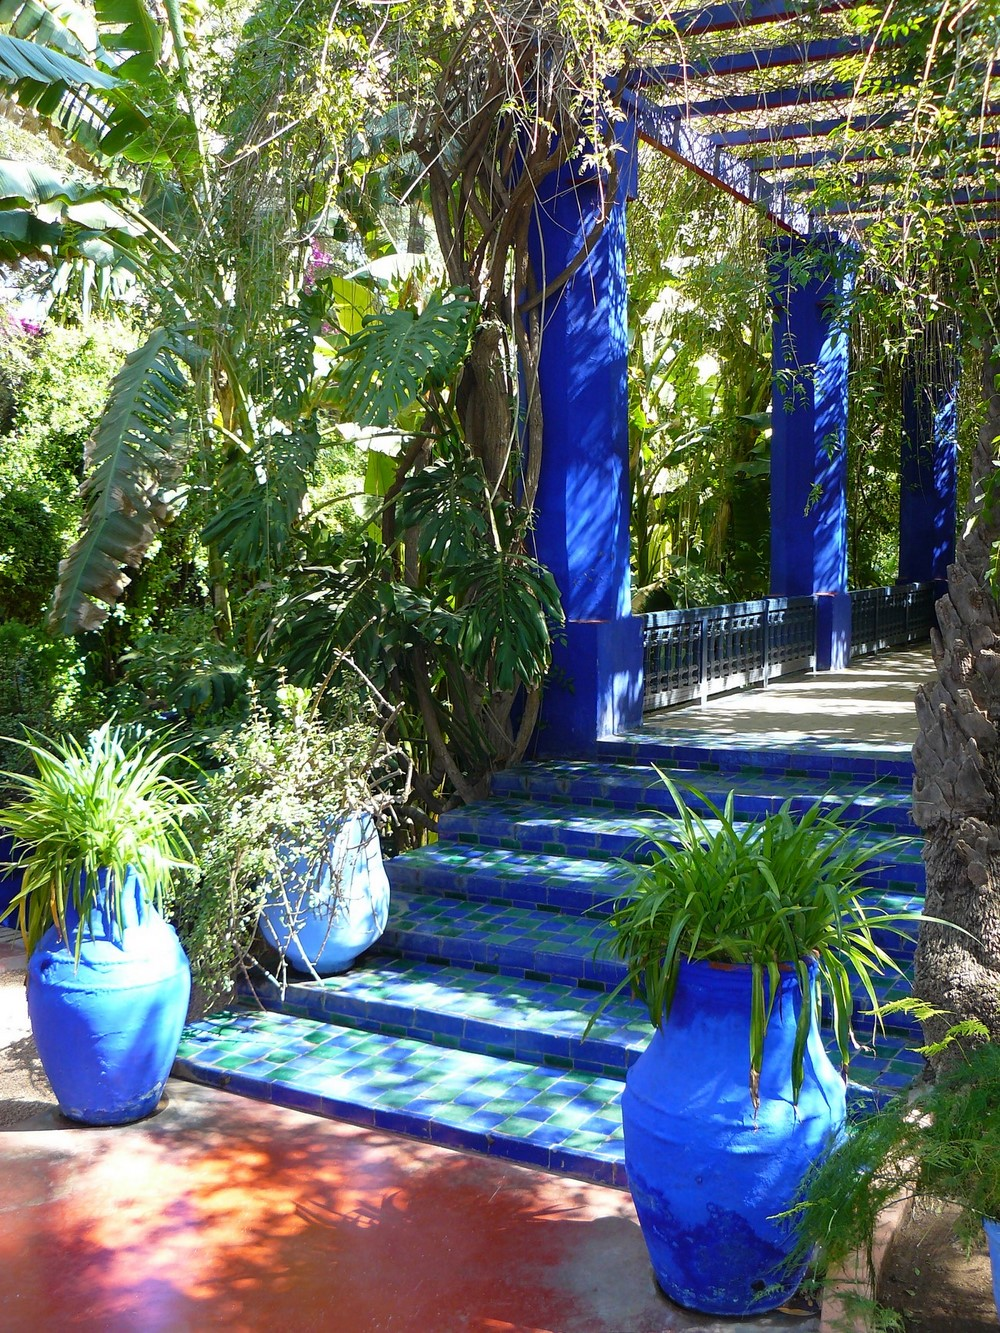 Marrakech 10 photos envo tantes du jardin majorelle for Jardin marrakech